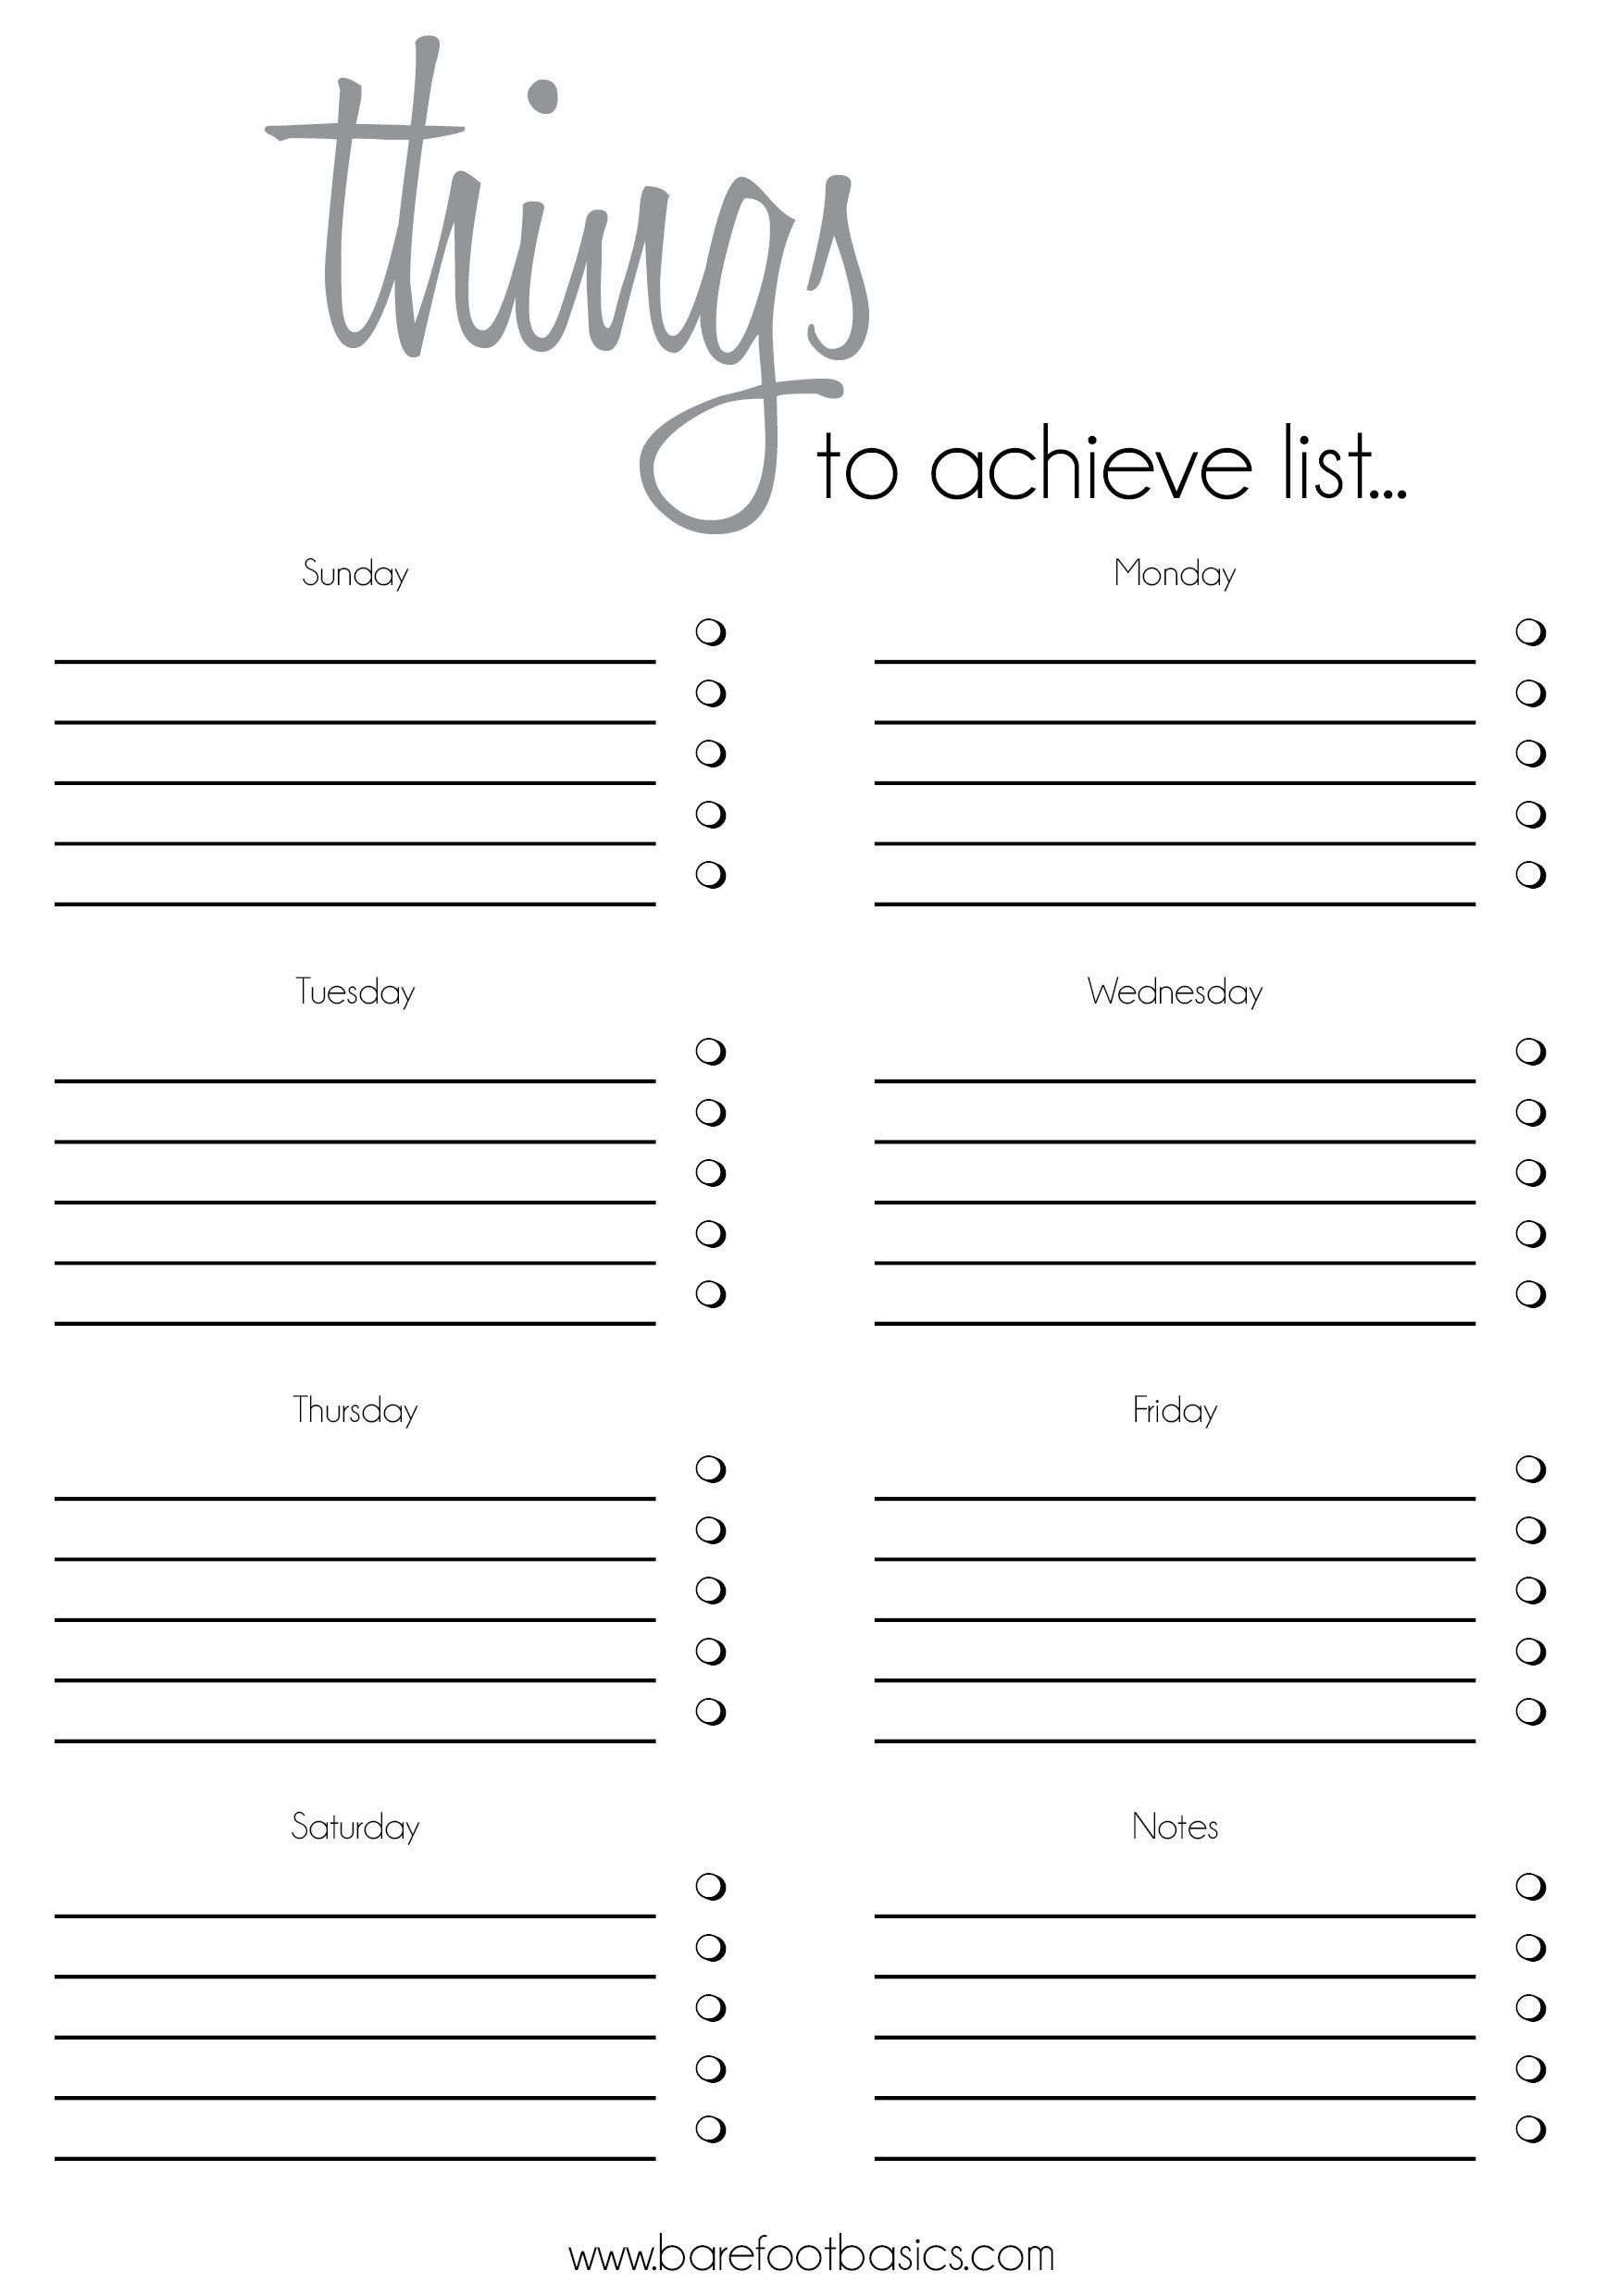 001 Archaicawful To Do List Template Design  Templates Microsoft Excel Printable FreeFull